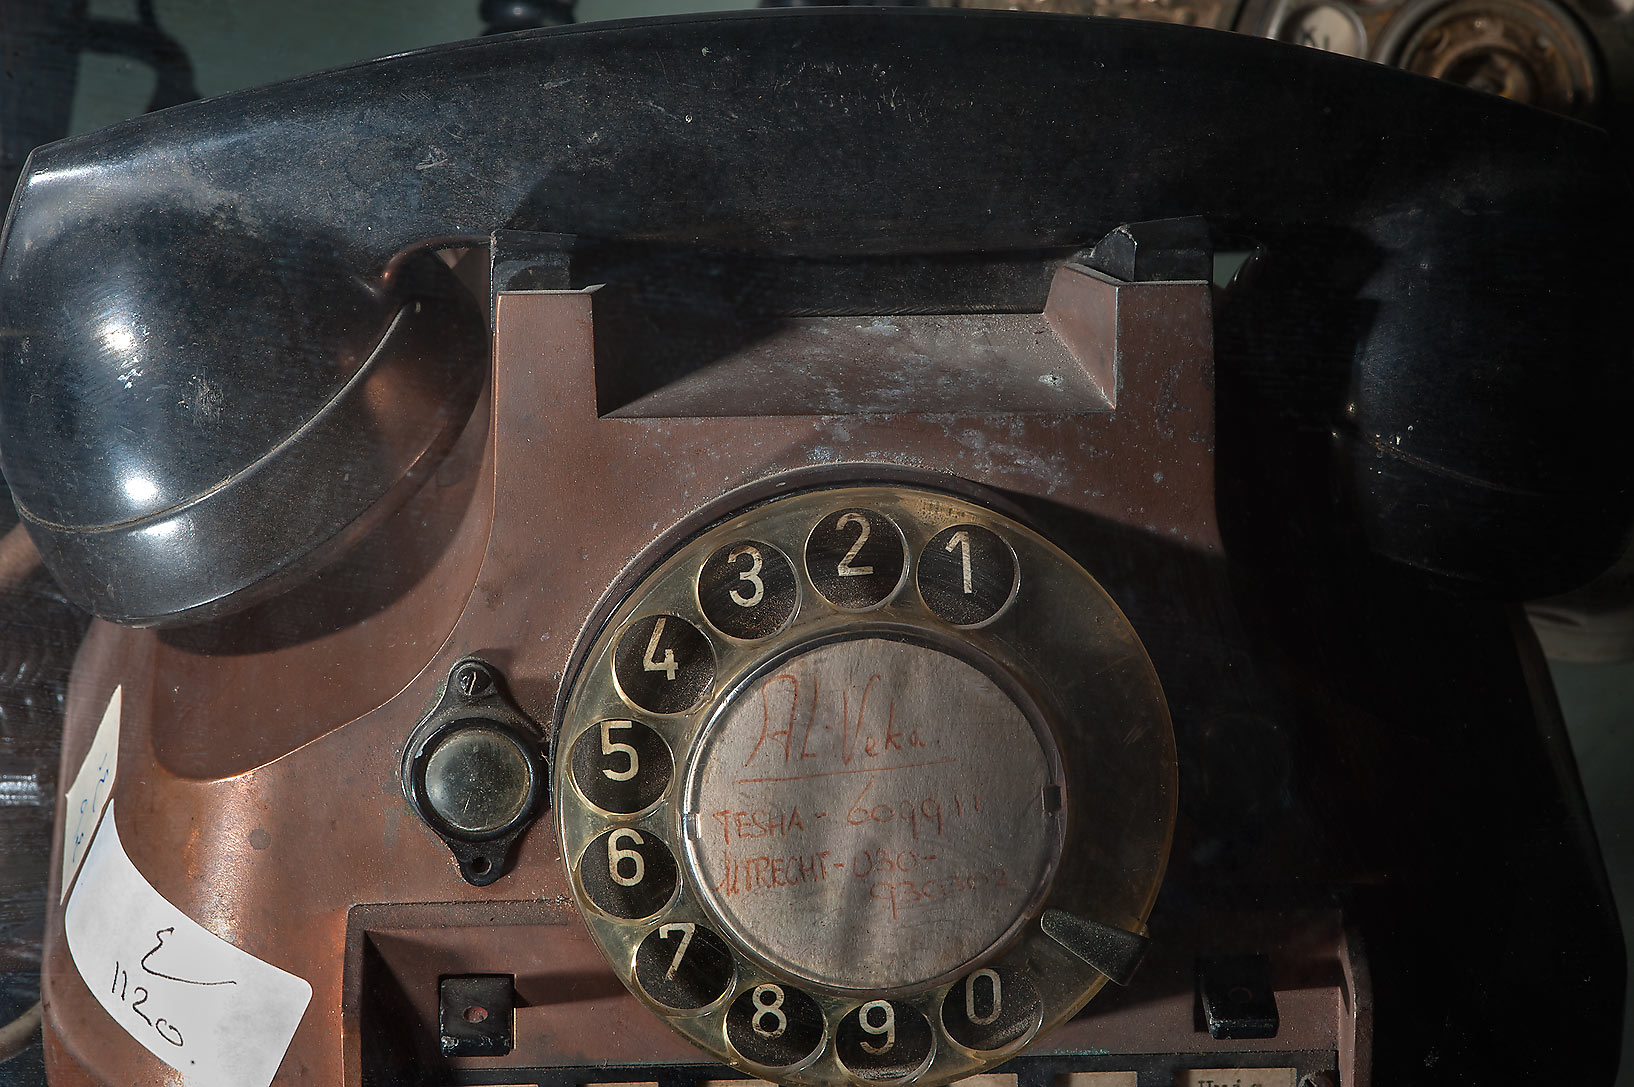 Dusty telephone on display in Sheikh Faisal Bin...Thani Museum near Al-Shahaniya. Qatar